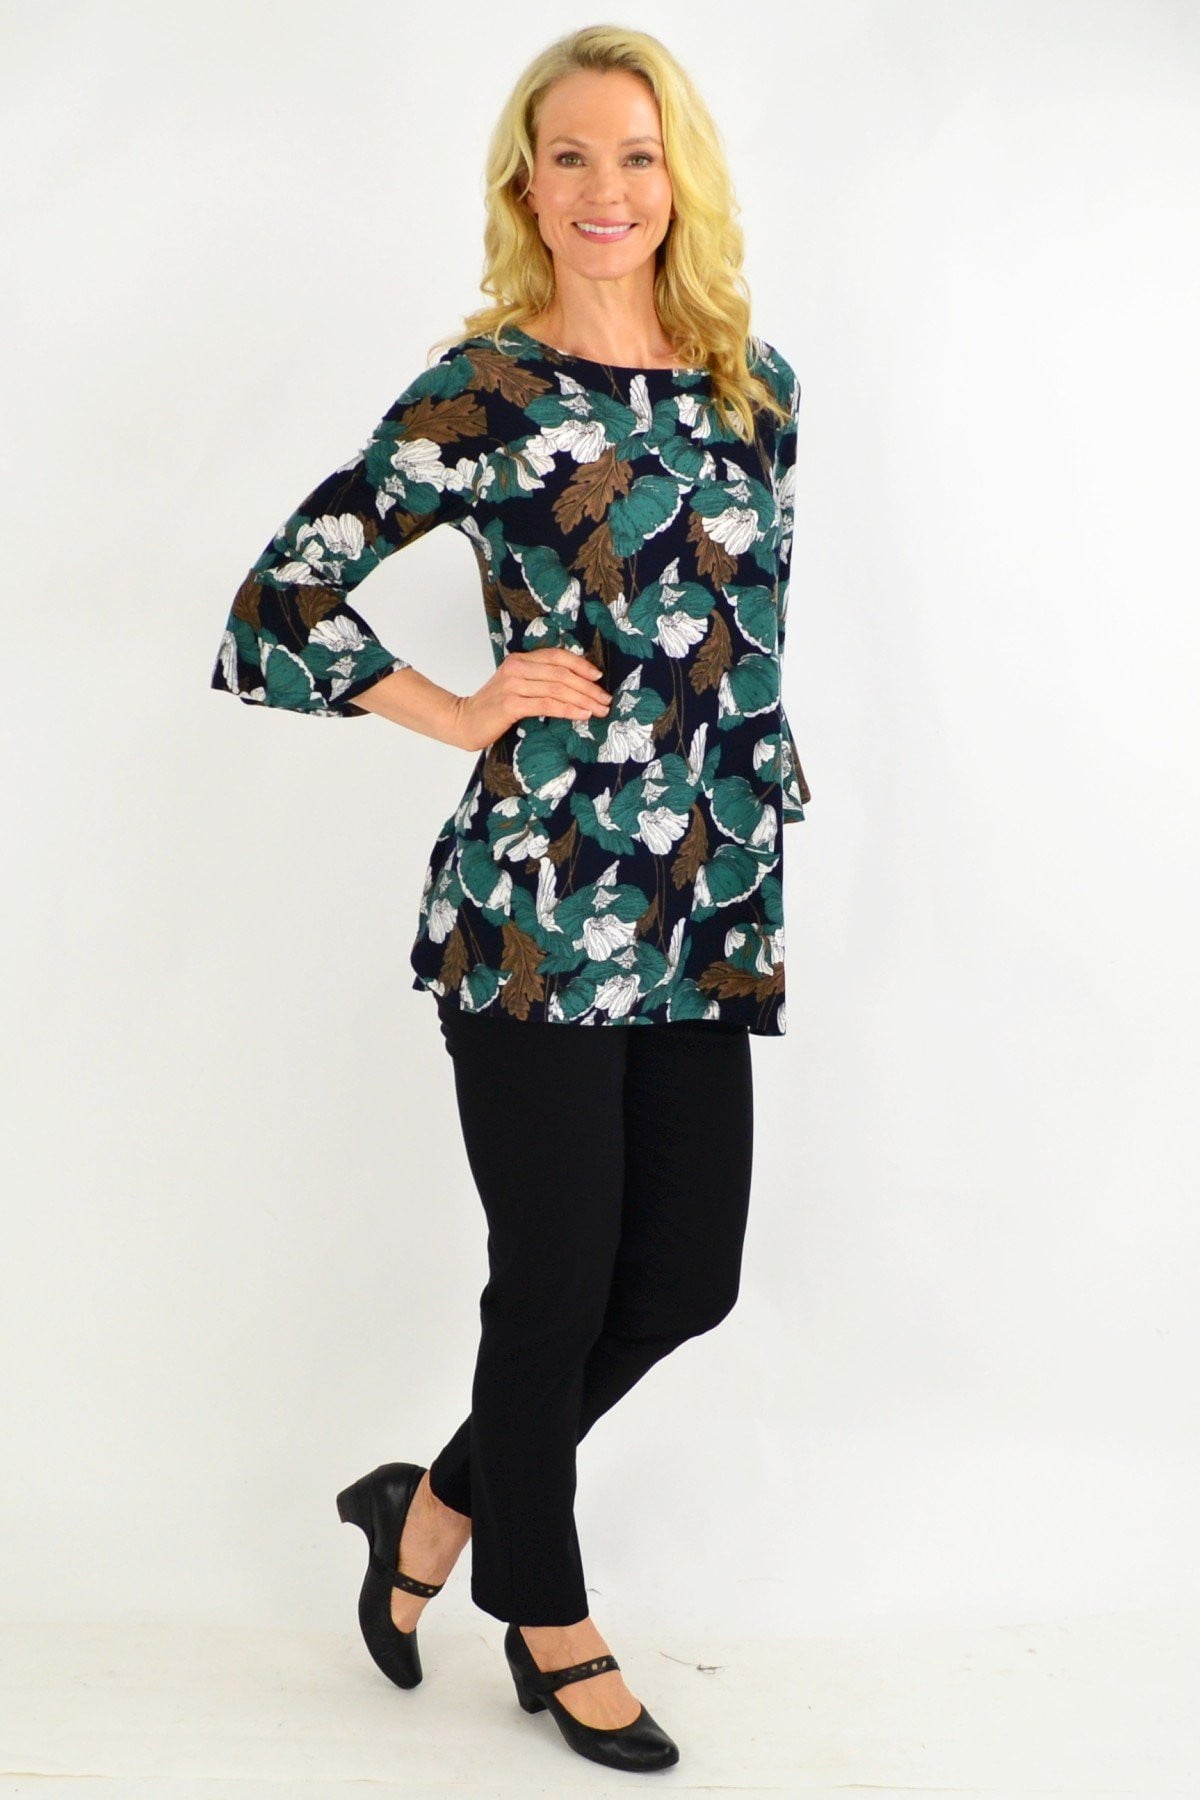 Green Floral Boat Neck Tunic Top | I Love Tunics | Tunic Tops | Tunic | Tunic Dresses  | womens clothing online